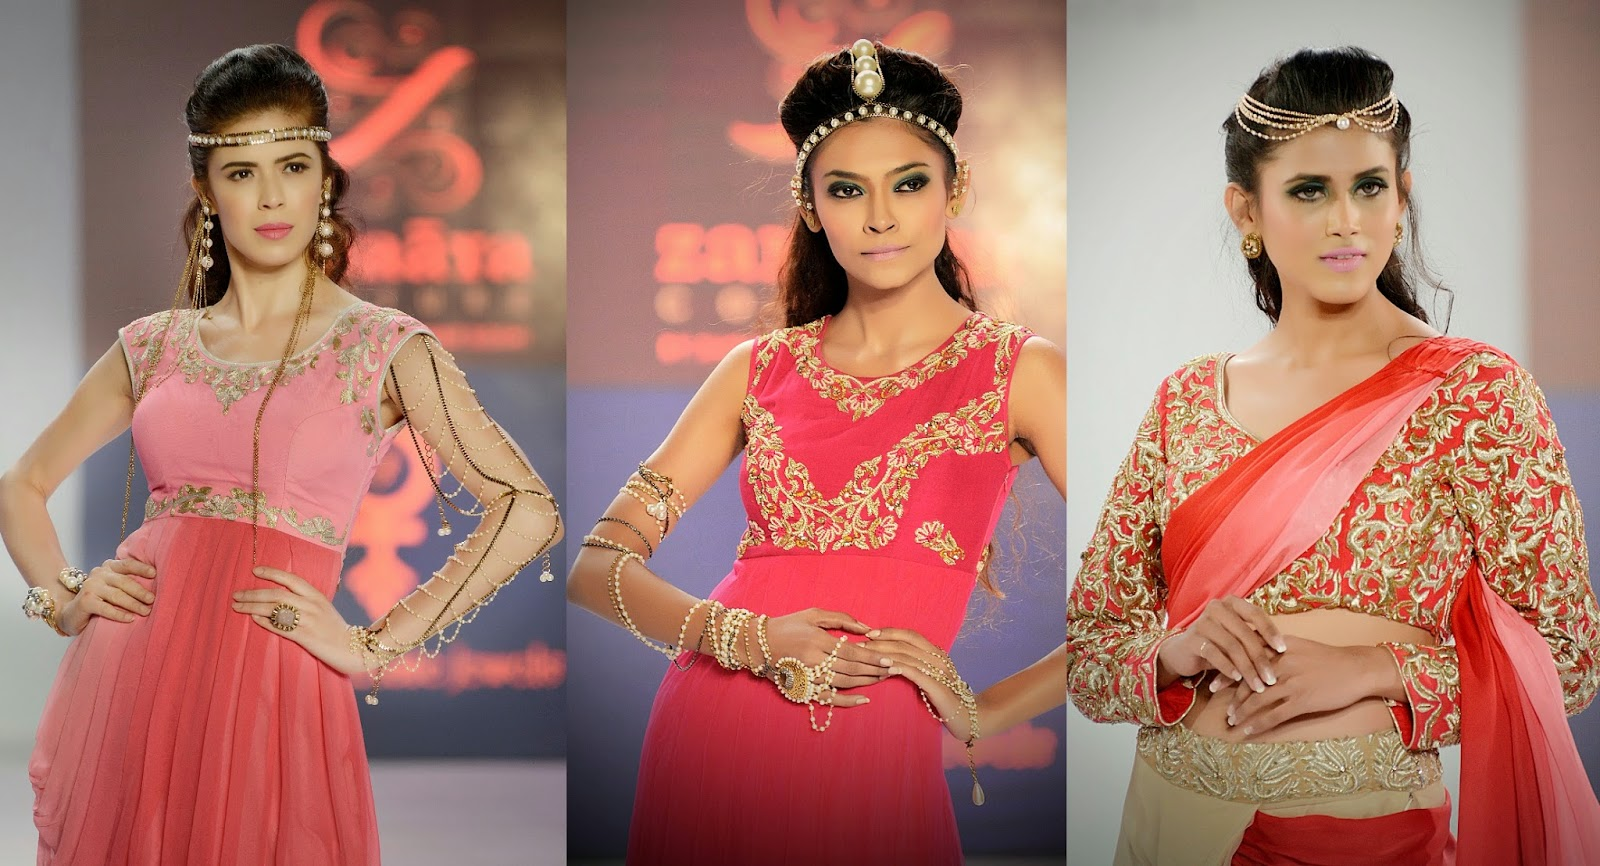 Models in Rejuvenate Jewels at Pune Fashion Week